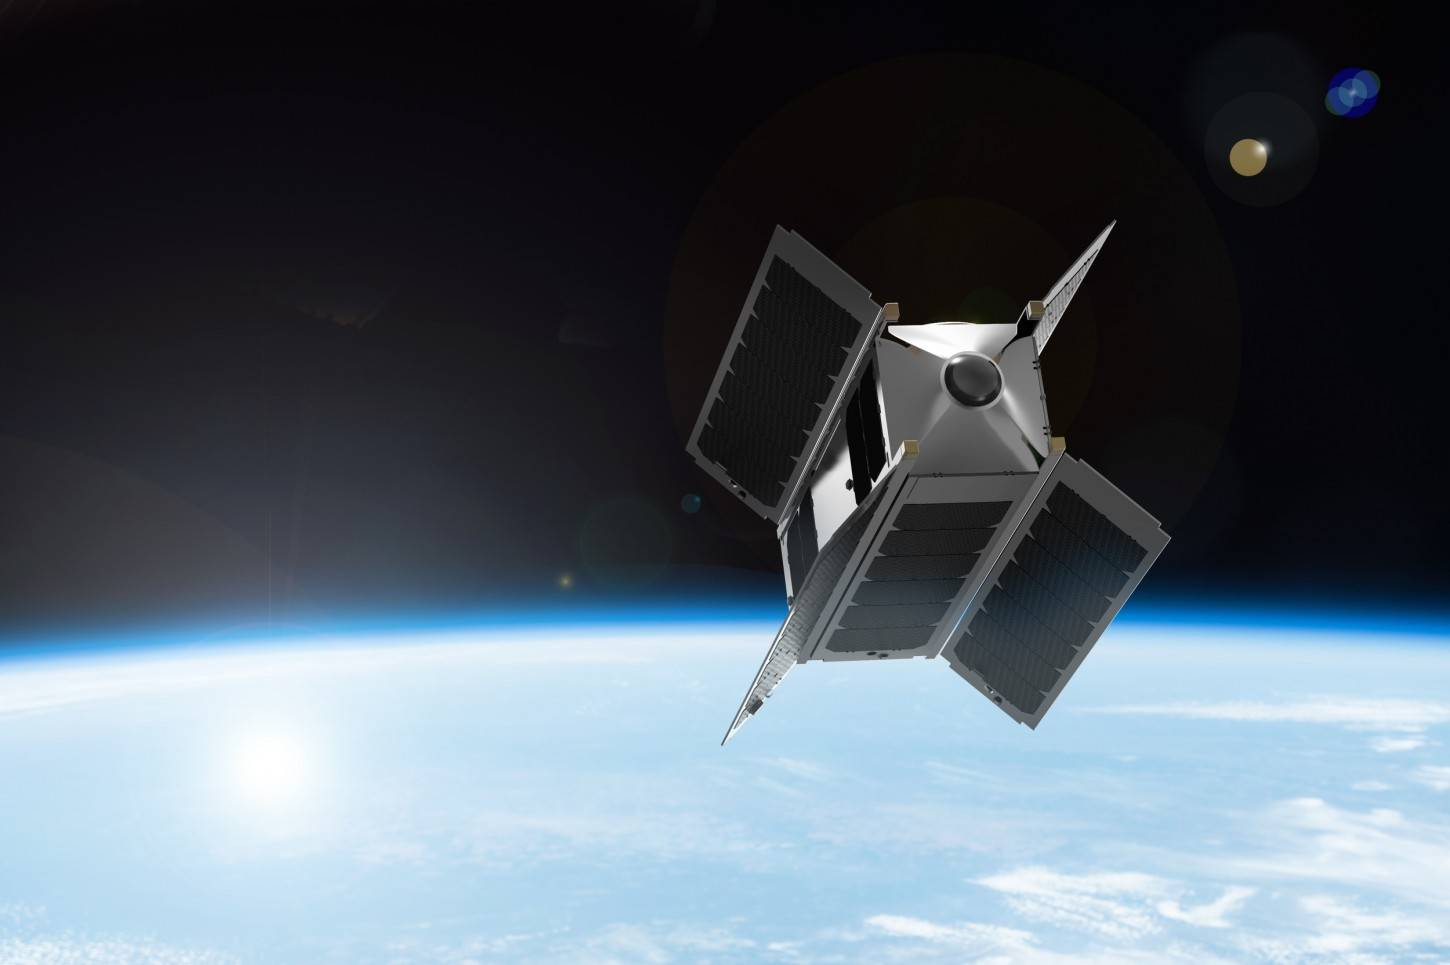 SpaceVR-vr-camera-satellite